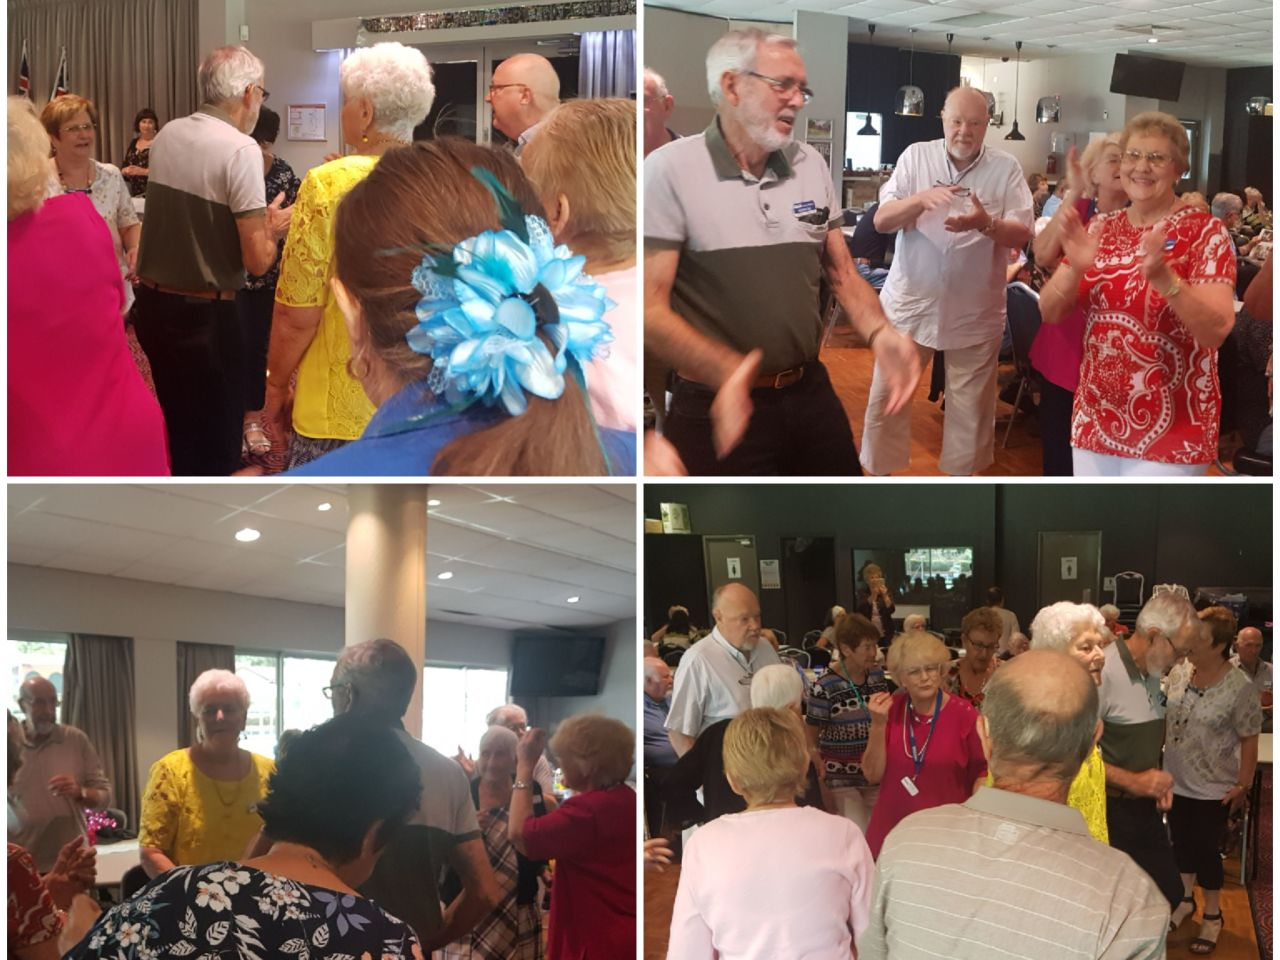 Singing, dancing, laughing and enjoying our guest entertainer Jay Turner. Our Calamvale members know how to live life and have fun fun fun.